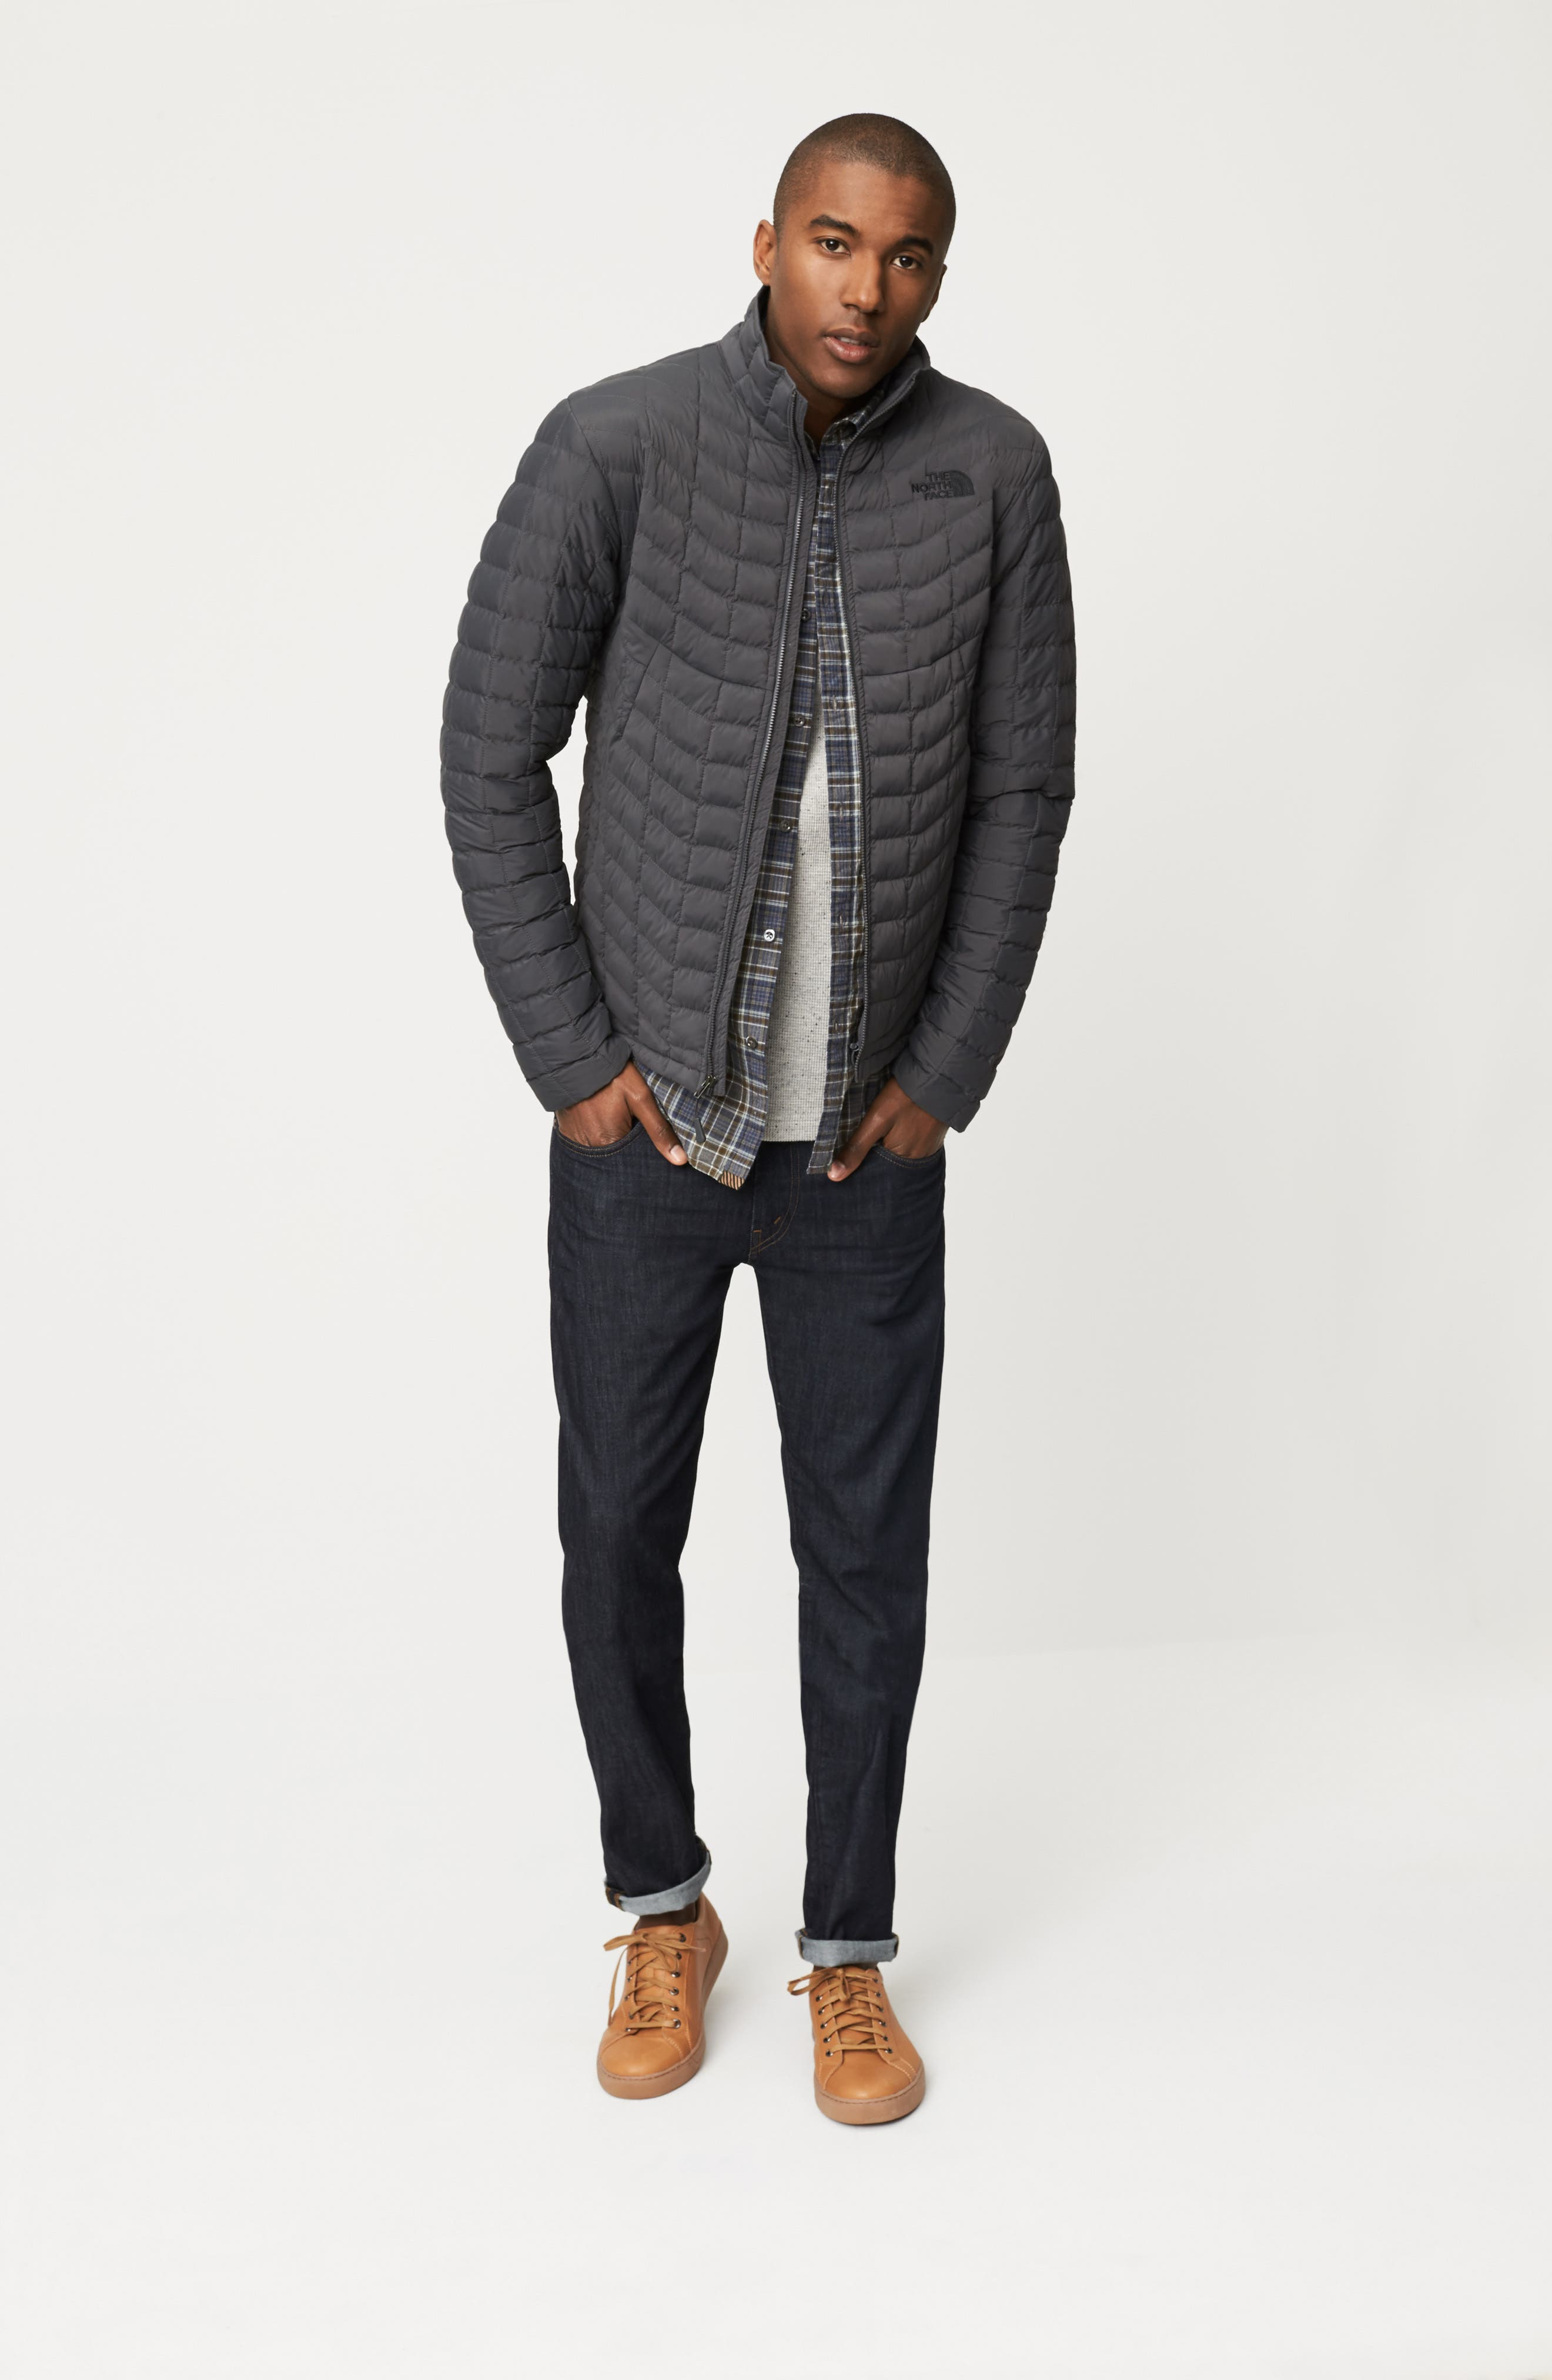 The North Face Jacket, Billy Reid Shirt & J Brand Jeans Outfit with Accessories